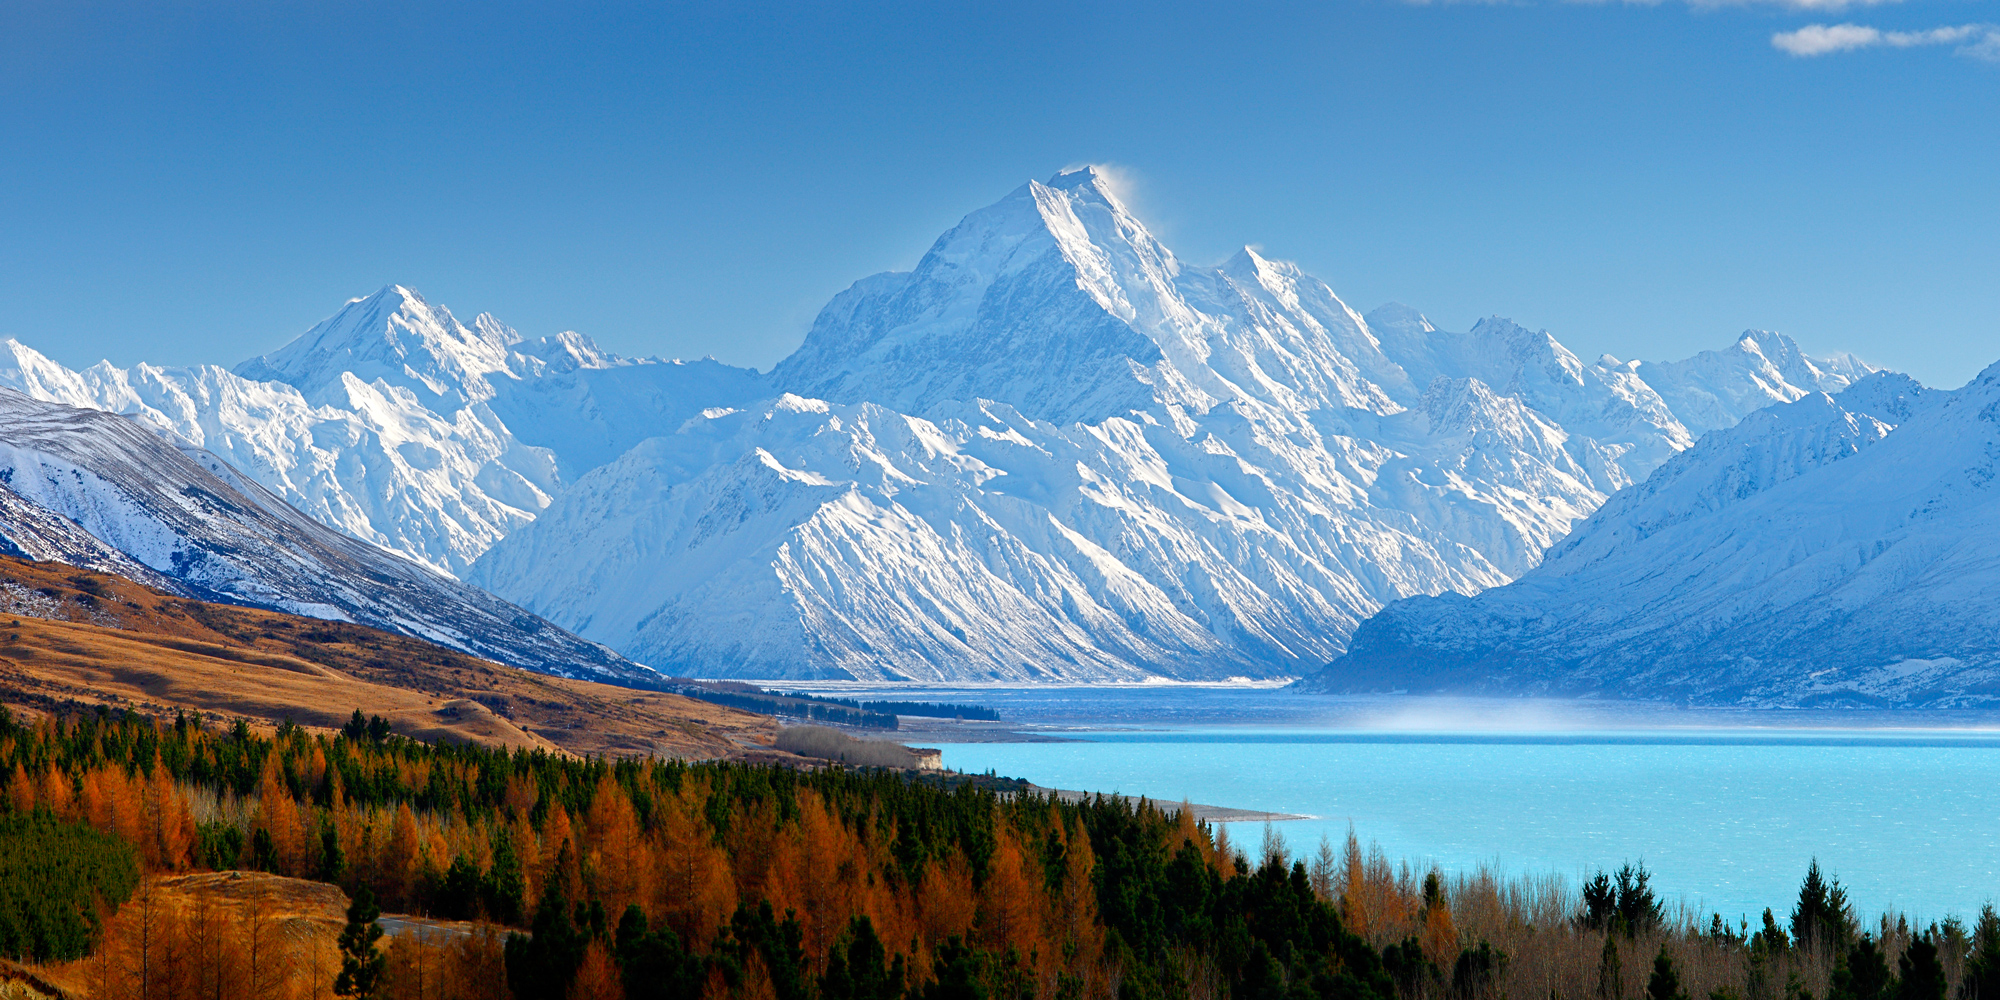 A bright blue turquoise lake with autumnal trees on one side, and a huge snow covered mountain in the distance